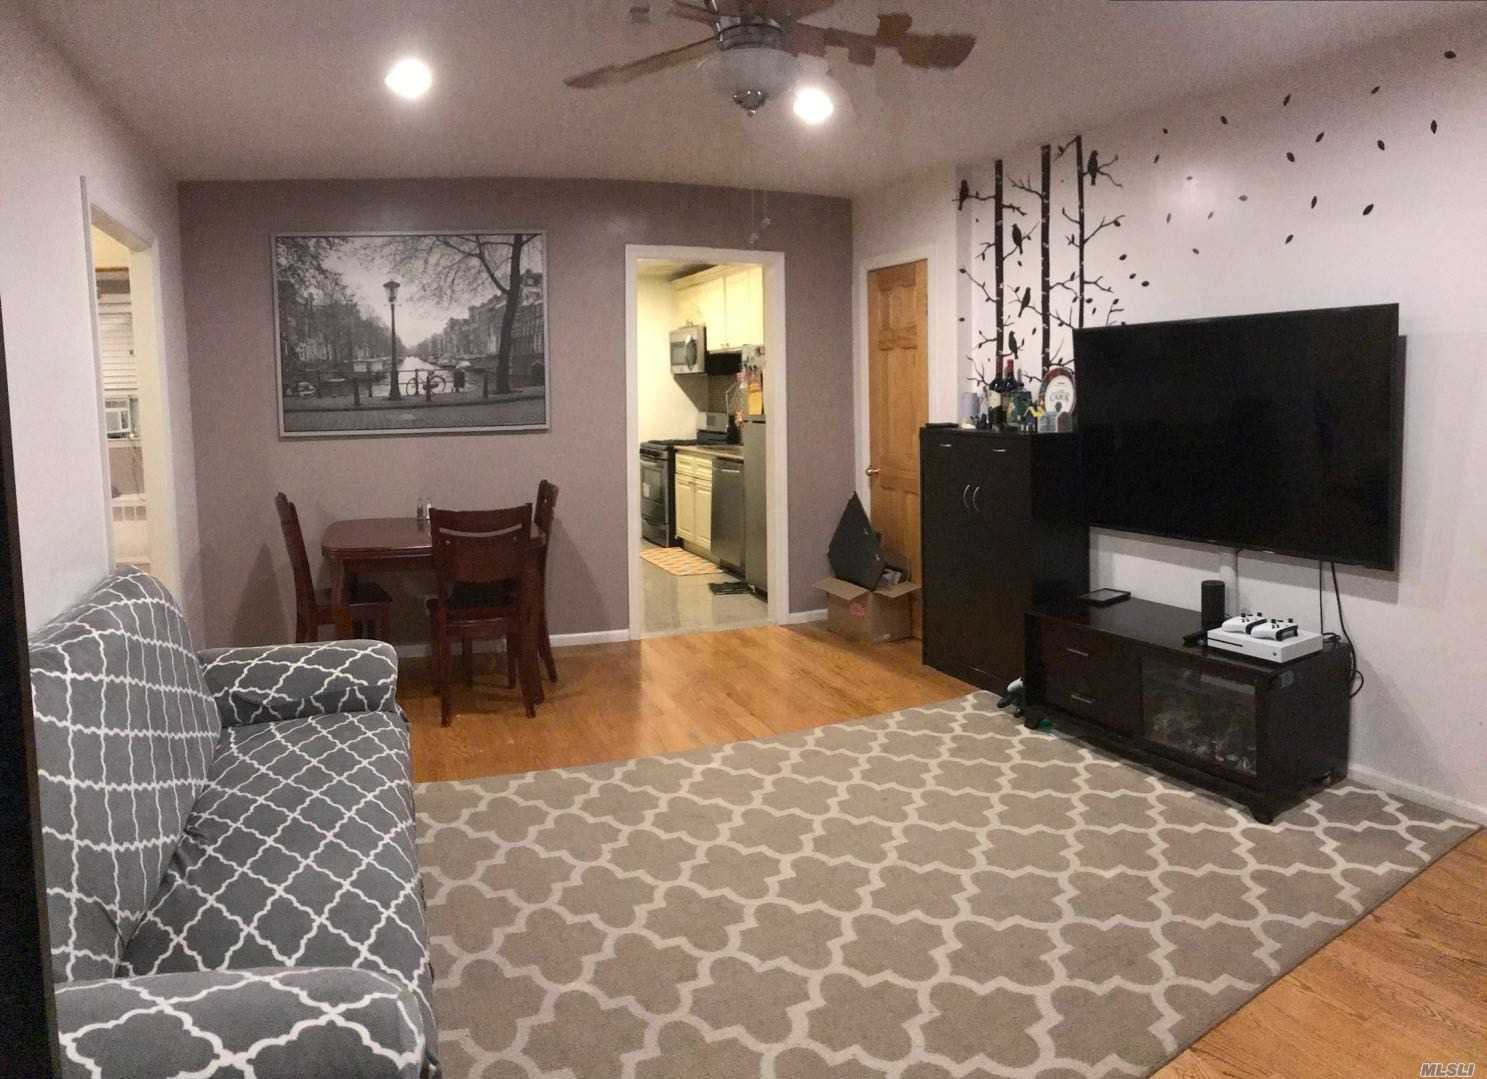 Excellent Condition 2 Bedrooms Apartment On 1st Floor, Nearby Lirr, Nyct Buses. Garage Rental Is Available.